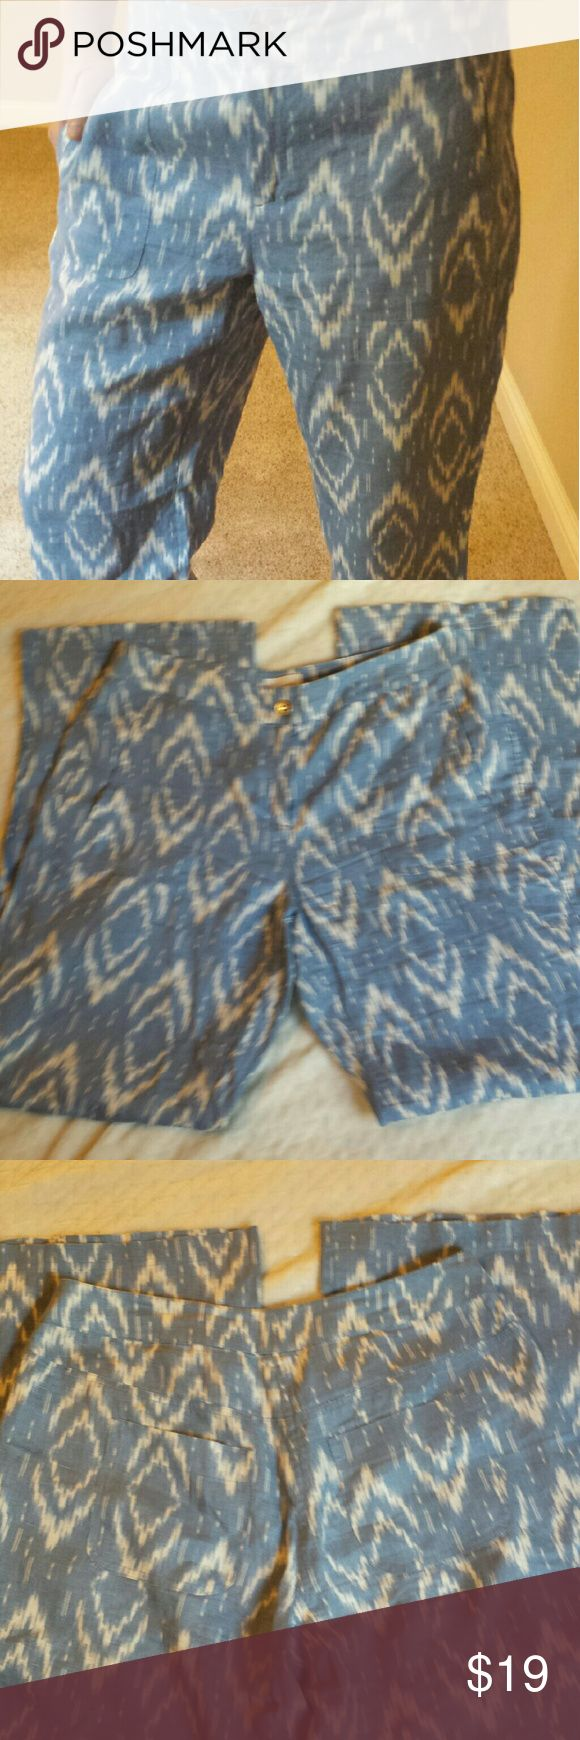 "Chico's Linen Aztec Pants So comfortable. Like new, soft blue and linen Aztec print pants. Loose fit. Wide leg. Zip front. Side and back pockets. 31 "" inseam. Waist is 34"". Chico's Pants"